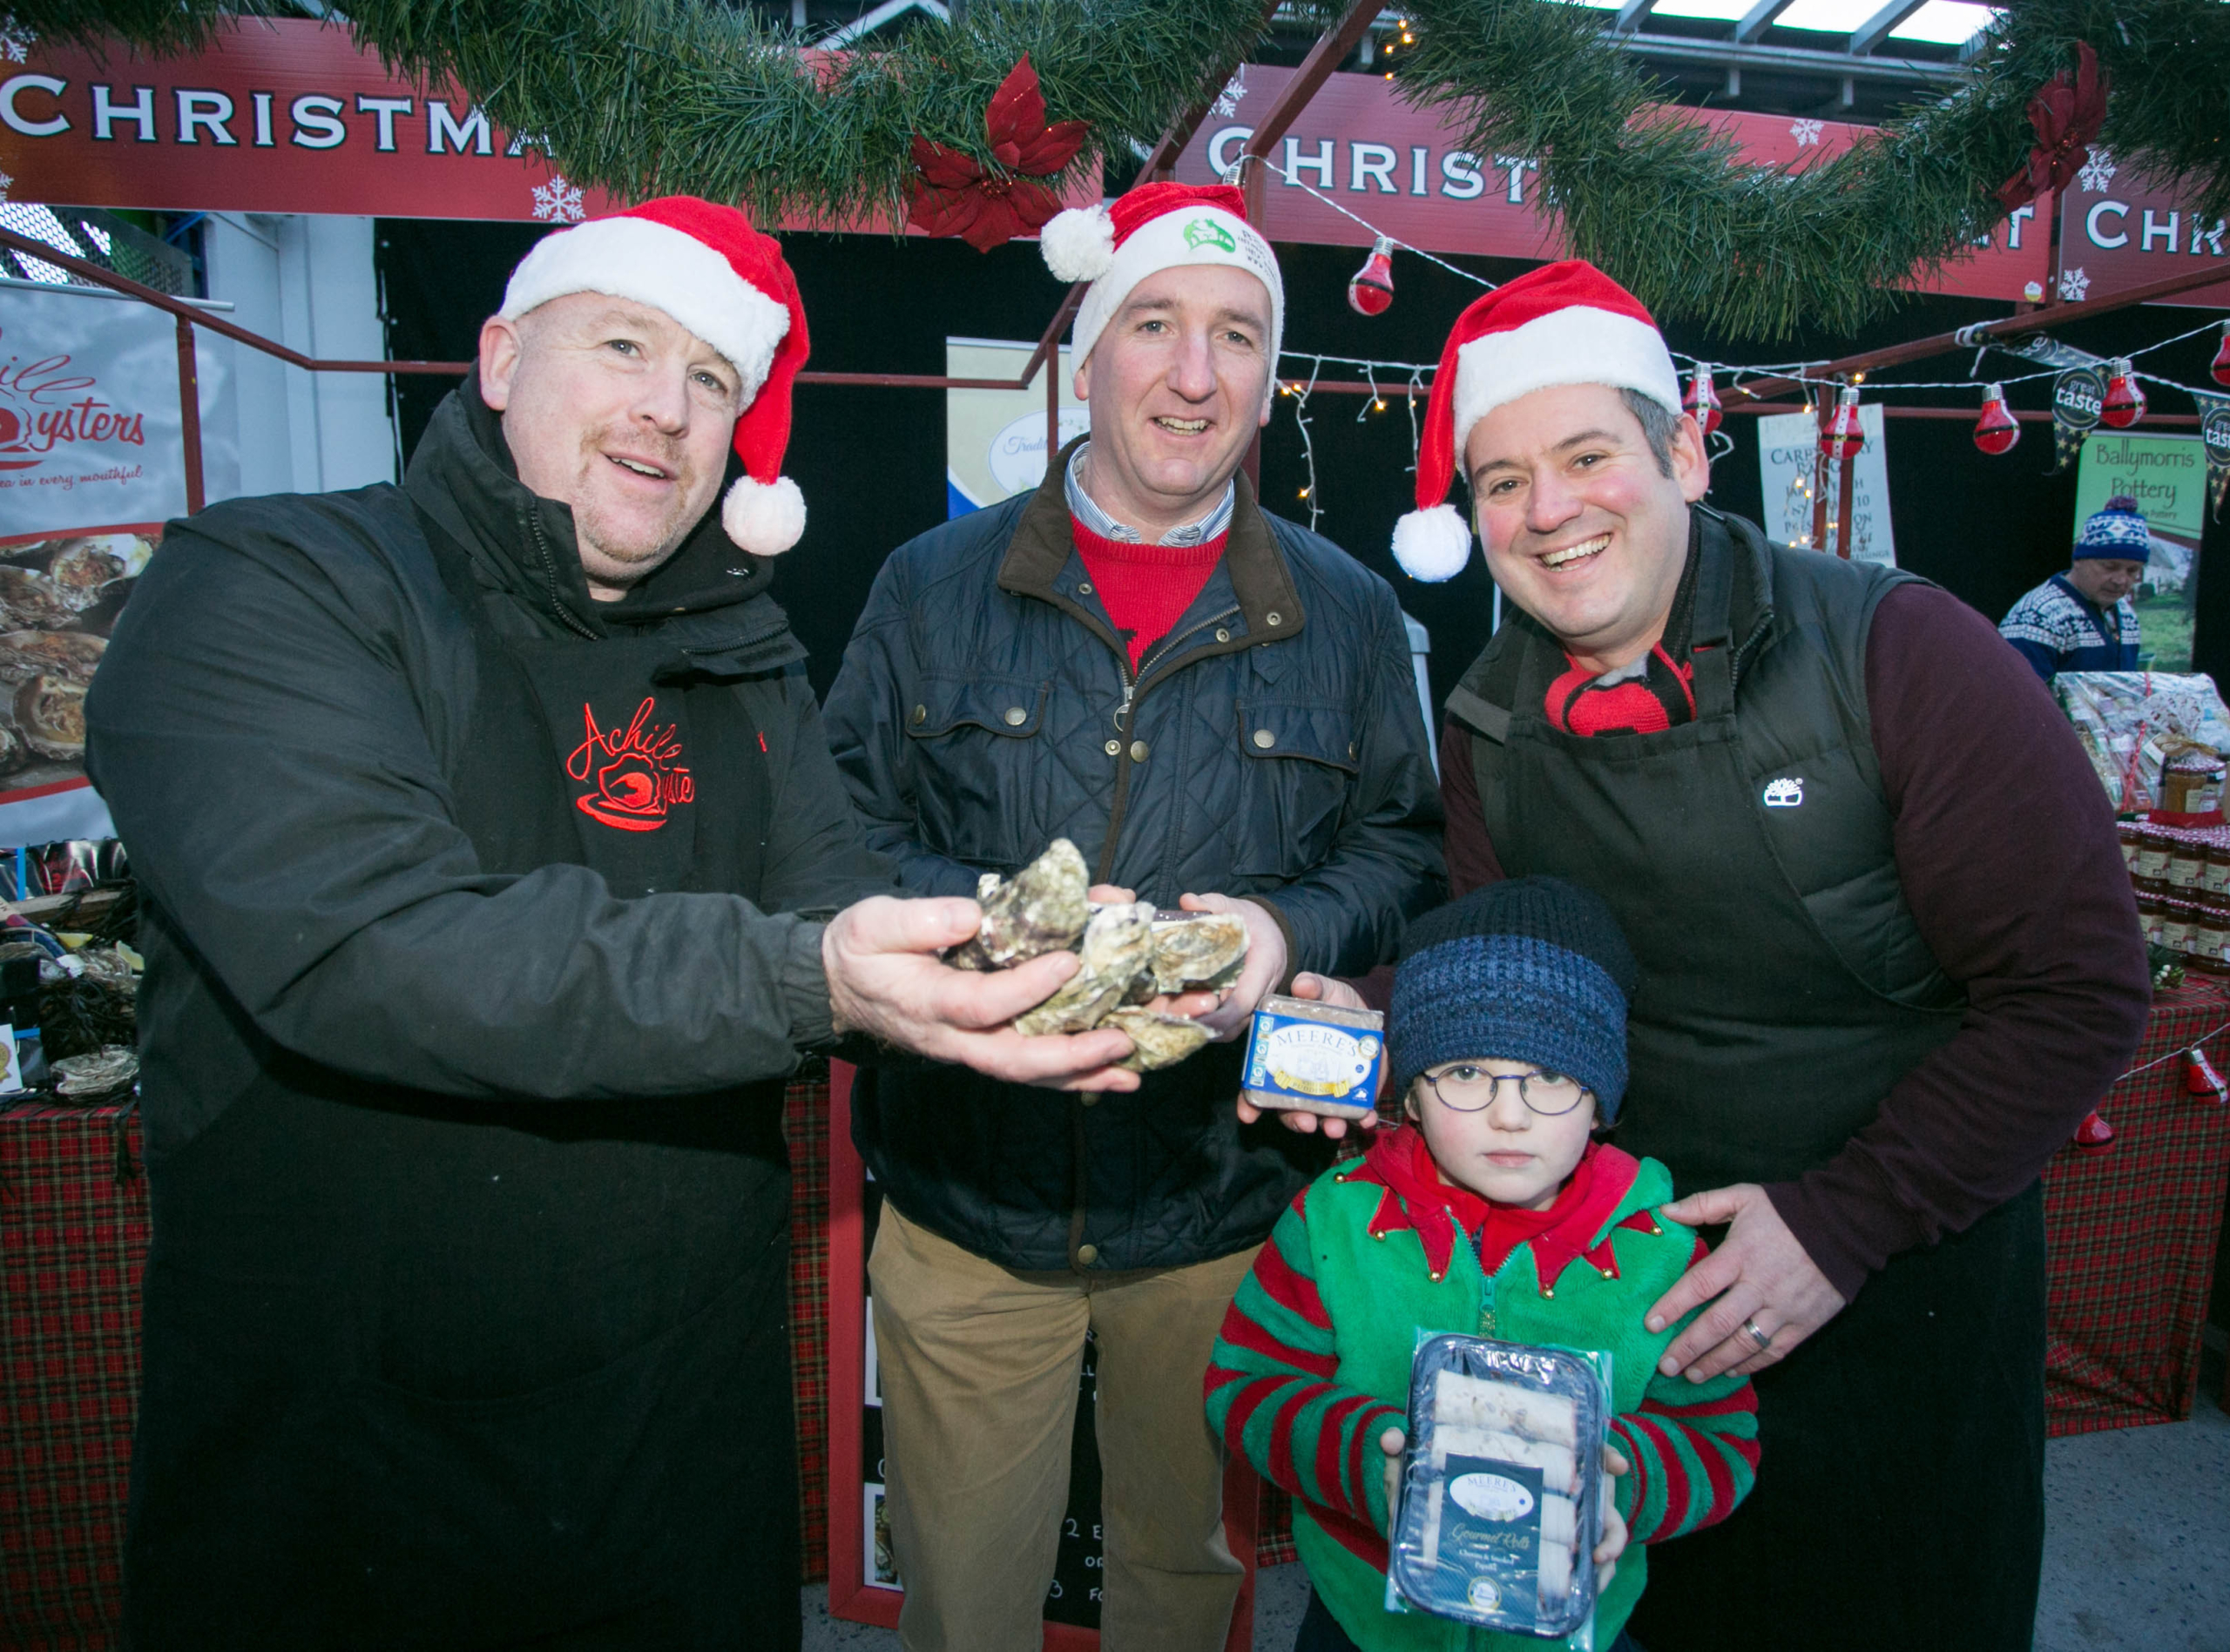 REPRO FREE 081217 Pictured at The Local Enterprise Office Christmas Fest Christmas market are Justin Kivlehan, Achill Oysters, Cllr Paul Murphy, mayor of Ennis, Barry Rees and Barach Rees (7) Meeres Pork Products .Pic Arthur Ellis.